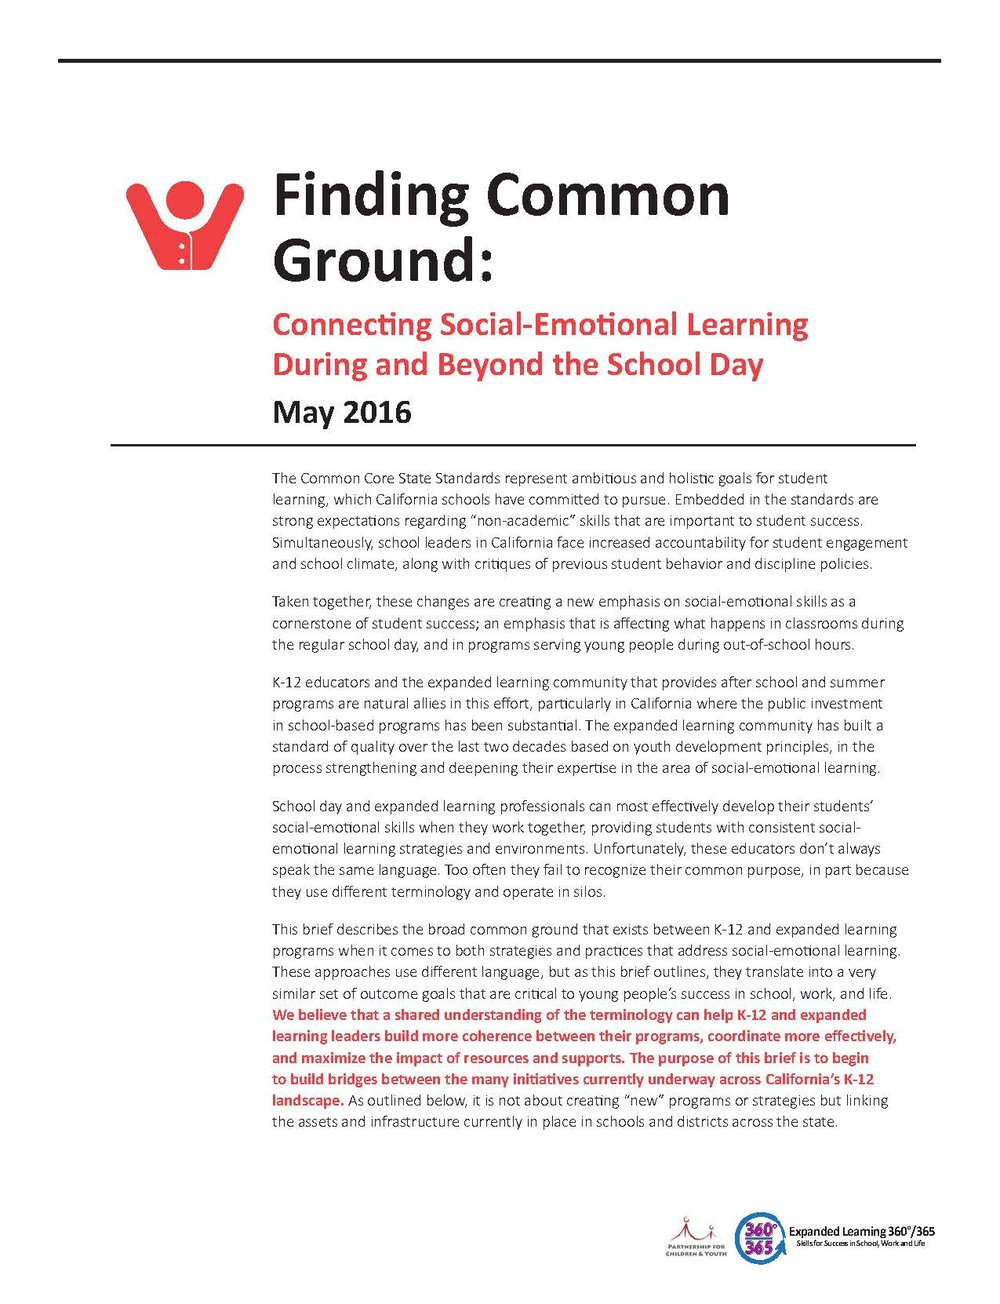 Finding Common Ground: Connecting SEL During & Beyond the School Day - This brief provides language and strategies to support alignment between K-12 and expanded learning programs, by cross-walking key priorities and initiatives in California that impact SEL, and providing San Francisco Unified School District as a case study to illustrate how to operationalize this alignment.